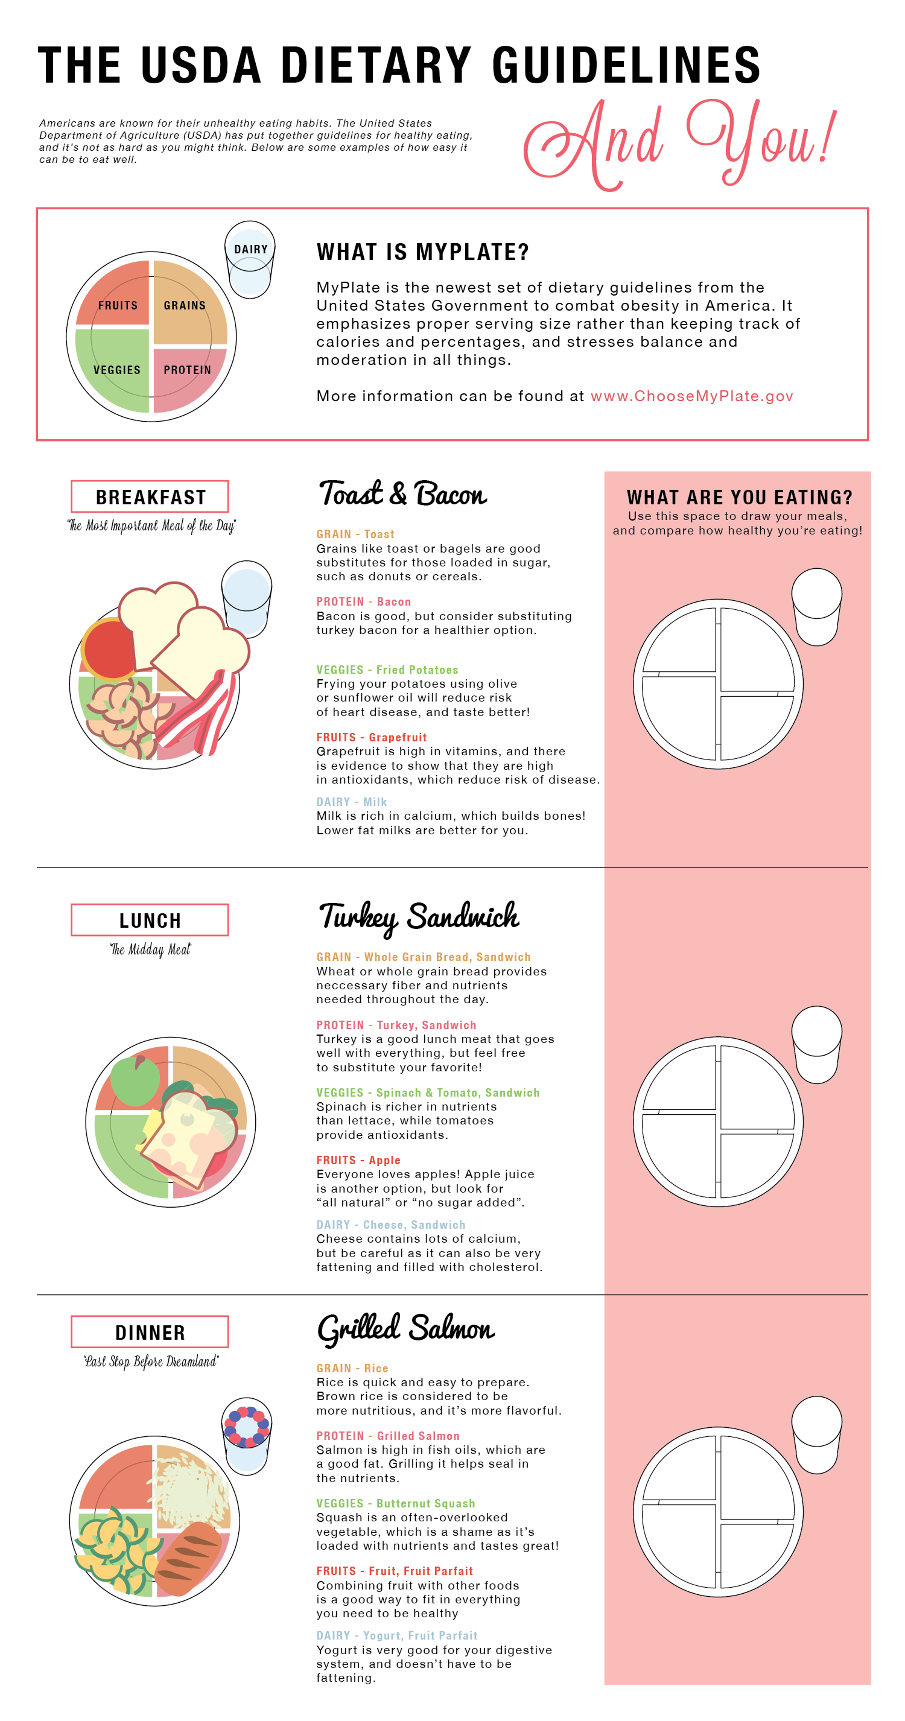 Dietary Guideline tips Usda dietary guidelines